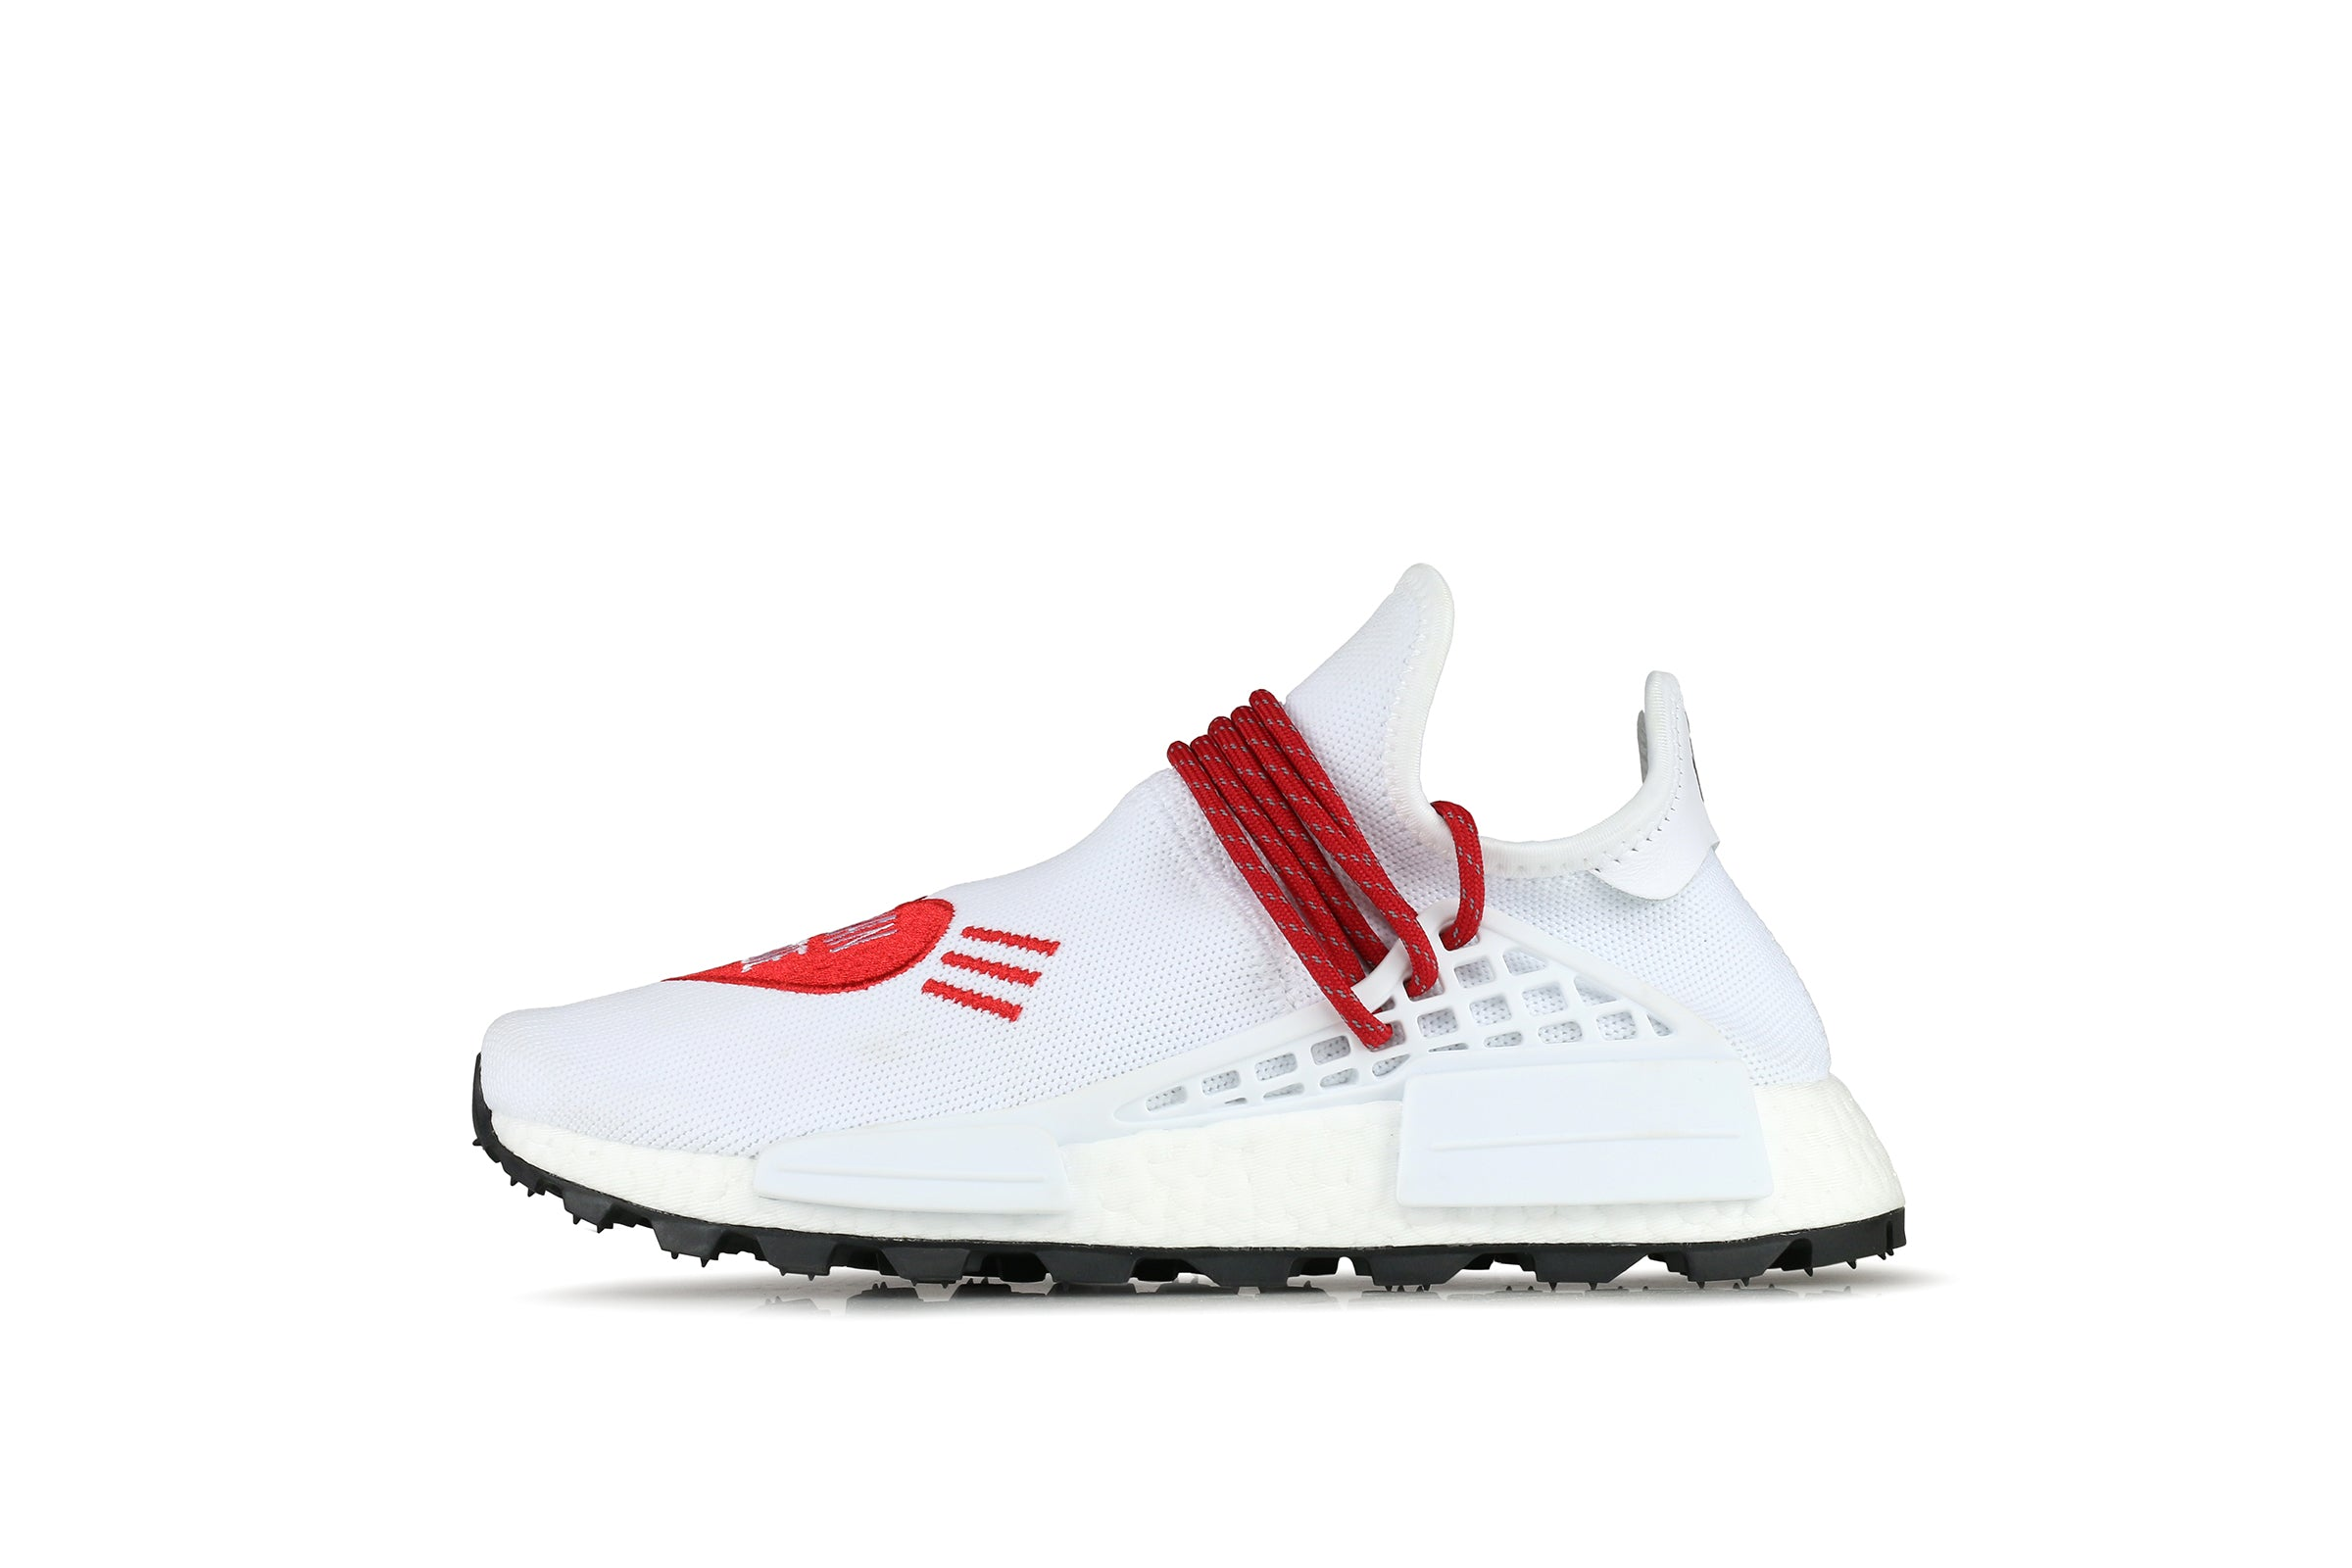 Adidas NMD HU Human Made x Pharrell Williams